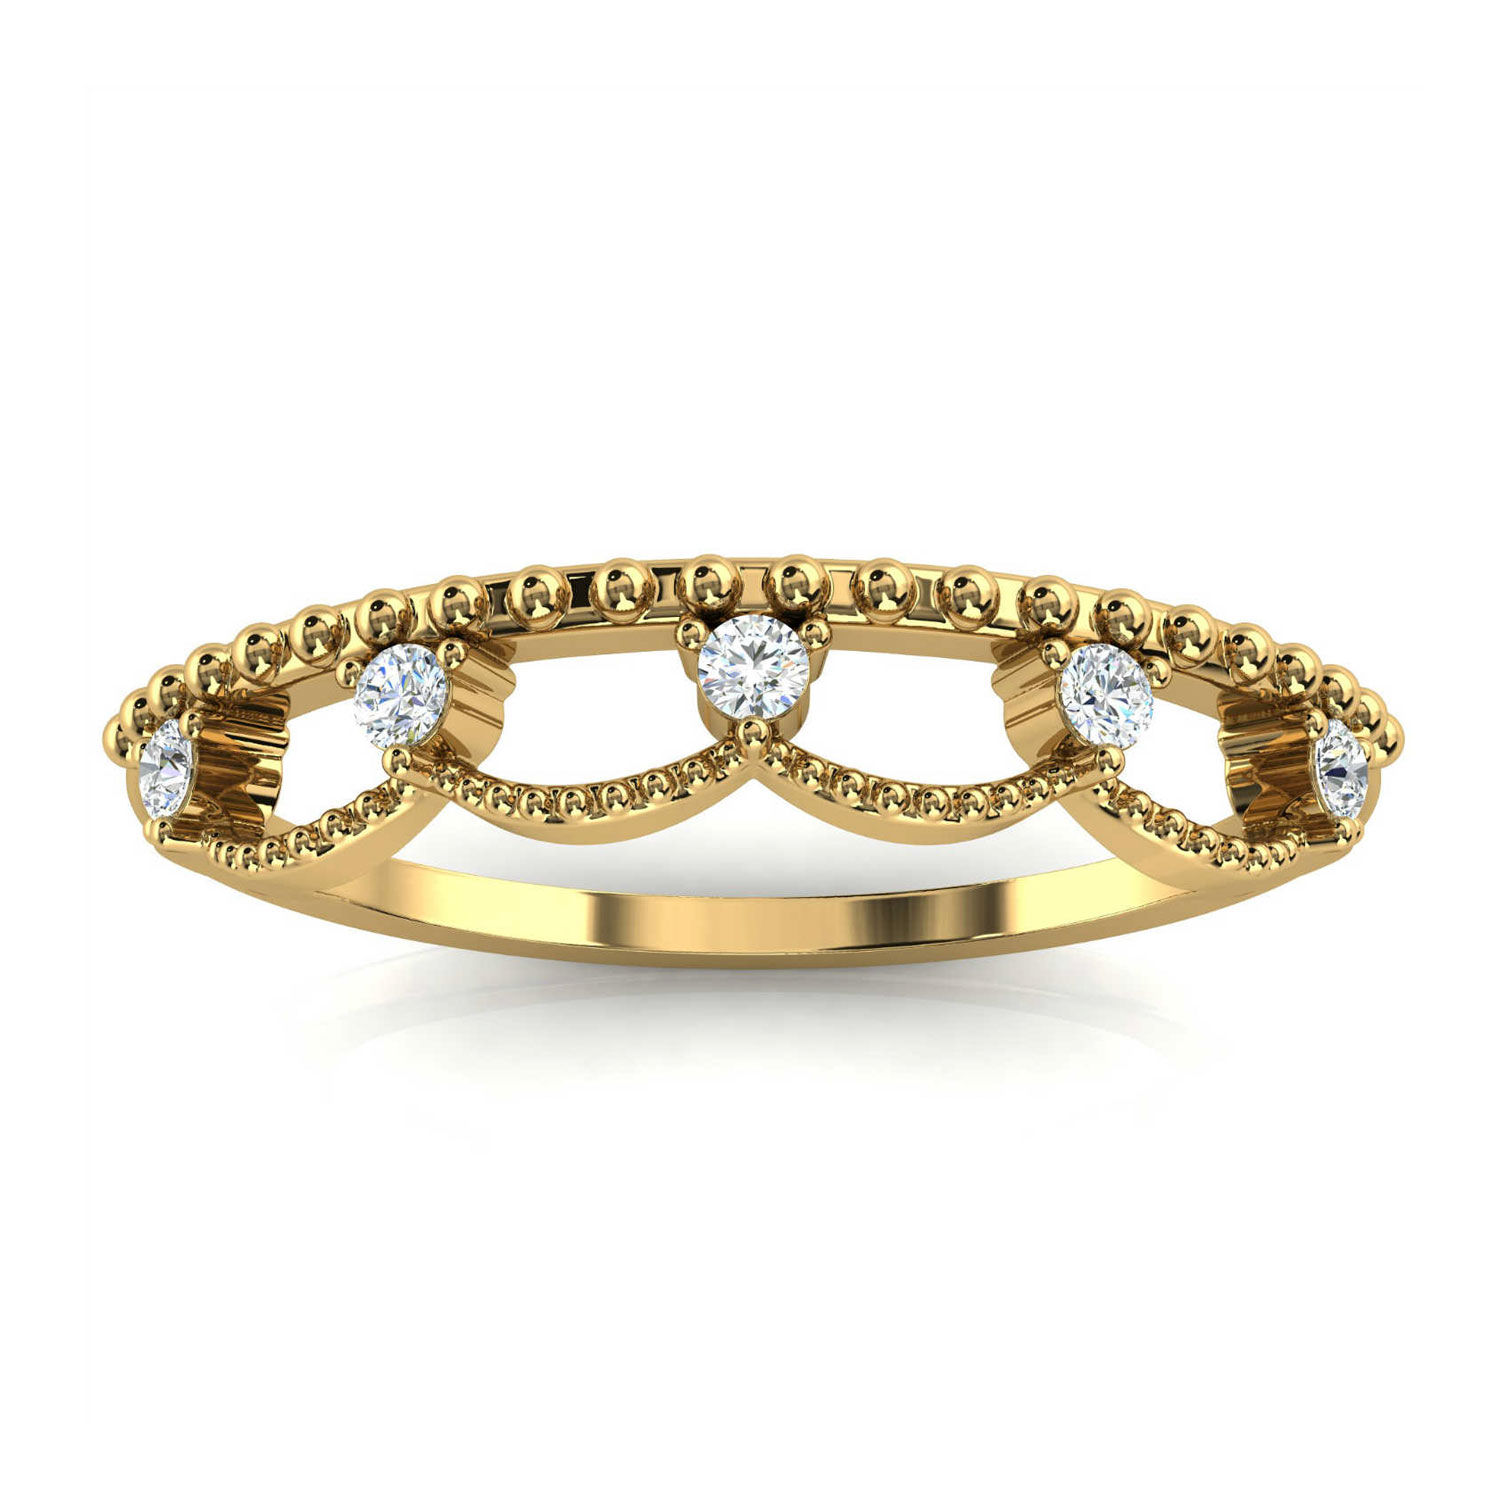 14K Yellow Gold Fel Petite Organic Design Diamond Ring (1/10 ct. tw)